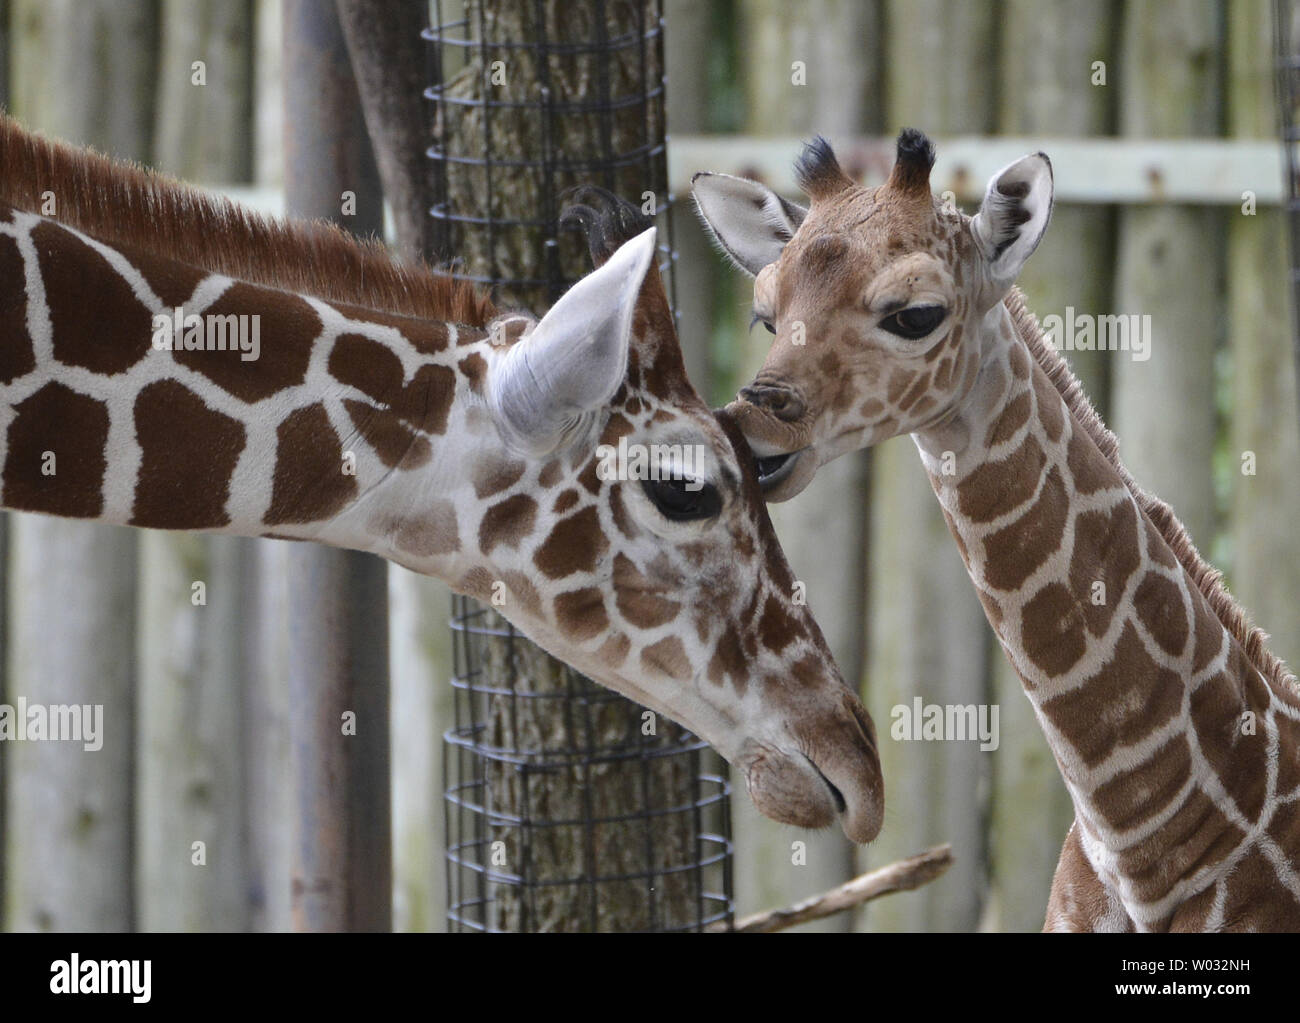 An 11 Day Old Giraffe Calf R Kisses His 7 Month Old Half Brother